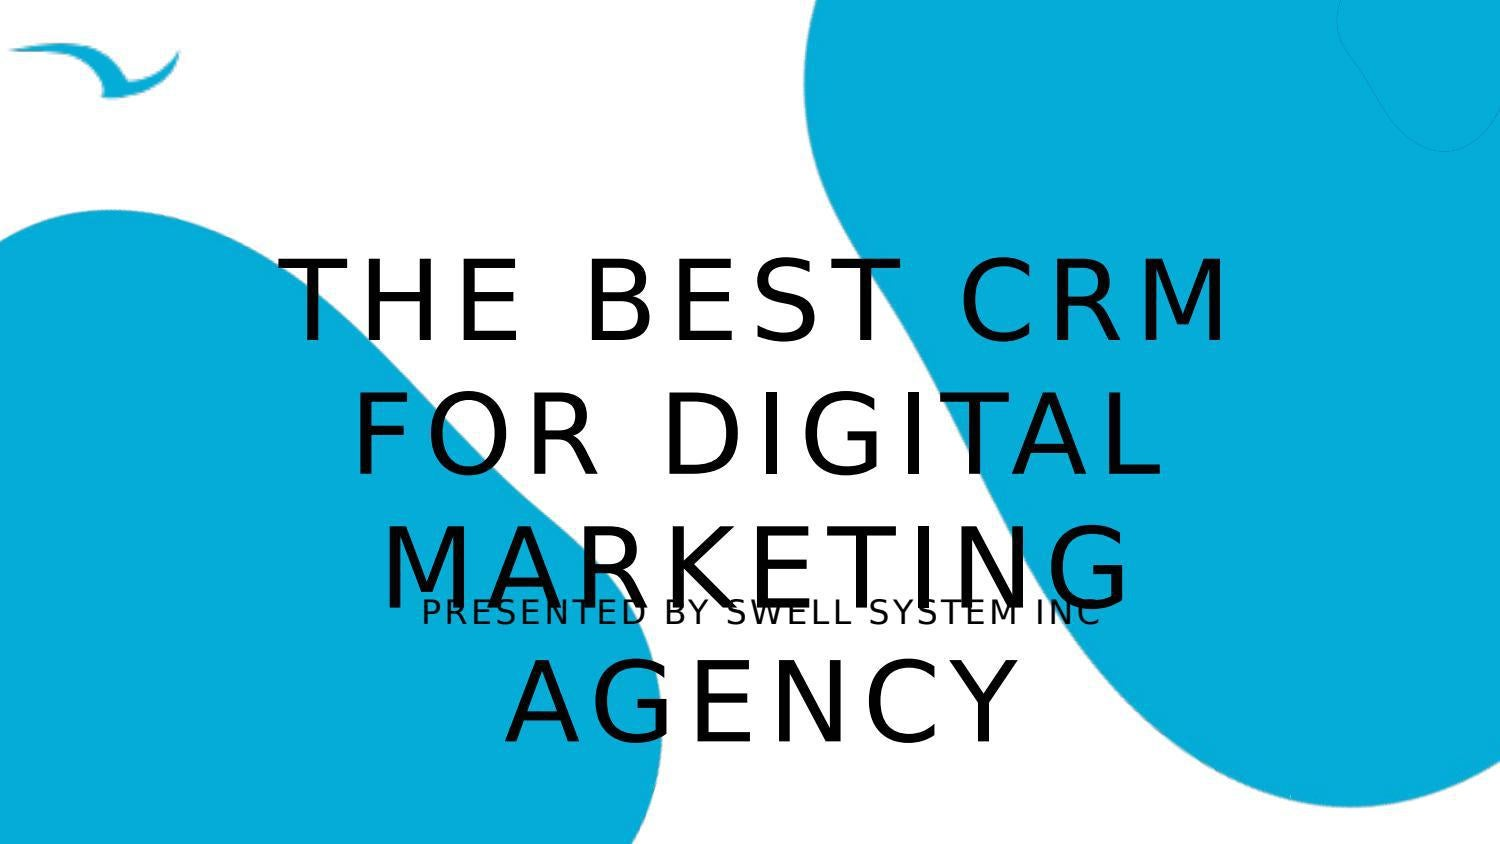 The Best CRM For Digital Marketing Agency